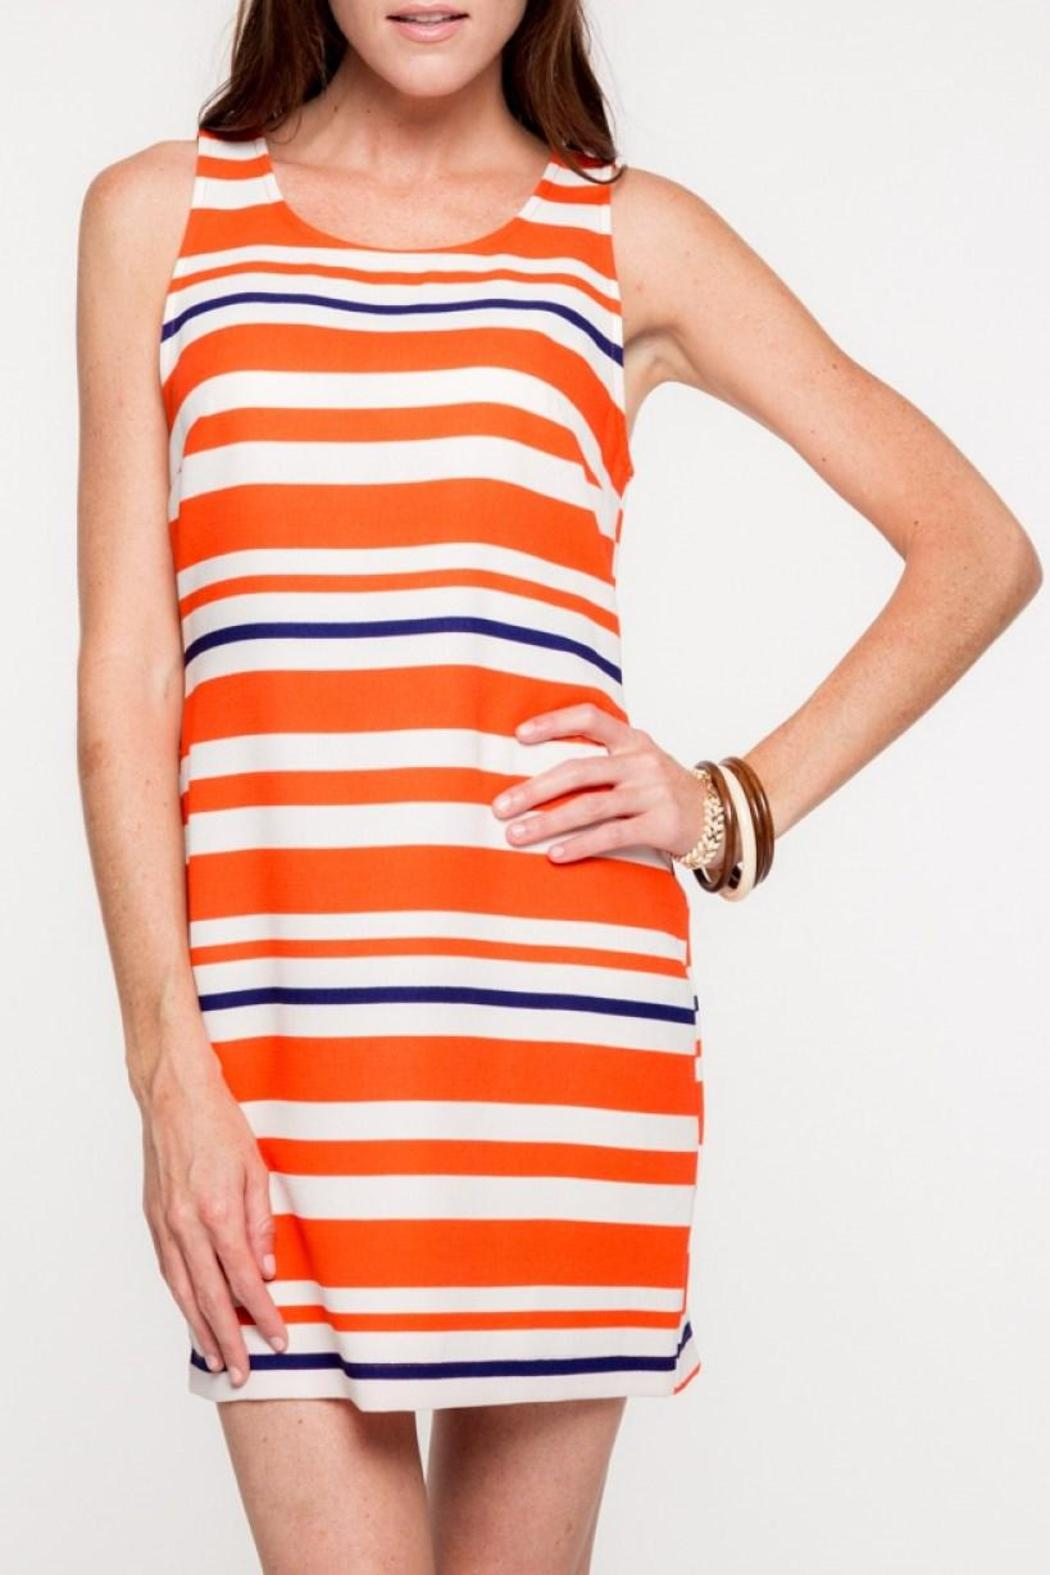 Everly Auburn Shift Dress - Main Image